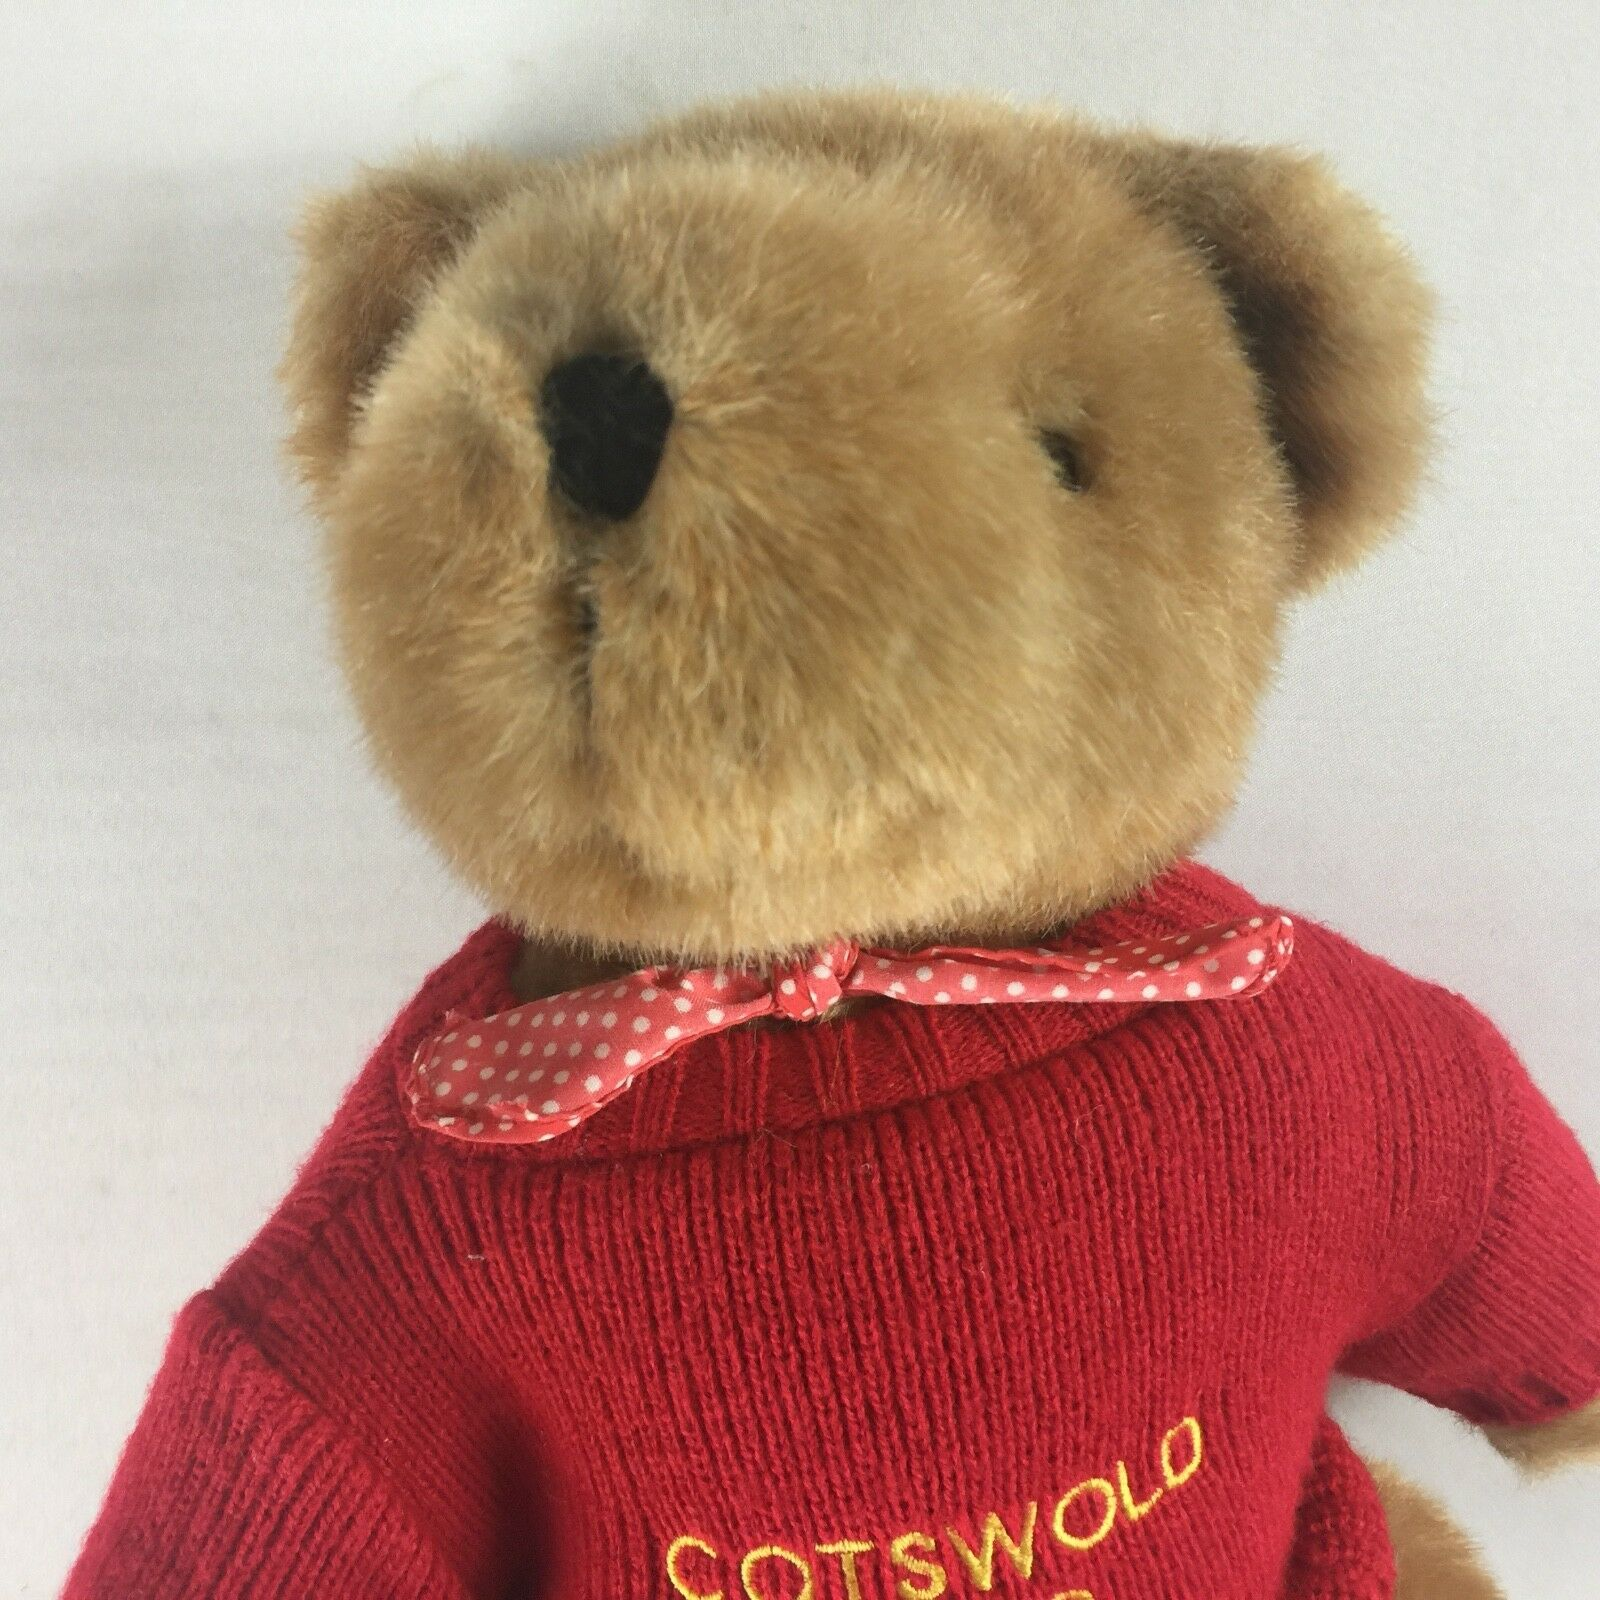 Cotswold Plush Bear VTG Fully Jointed Legs Head Arms Legs Jointed Sweater Bow Tie UK England 6611a4